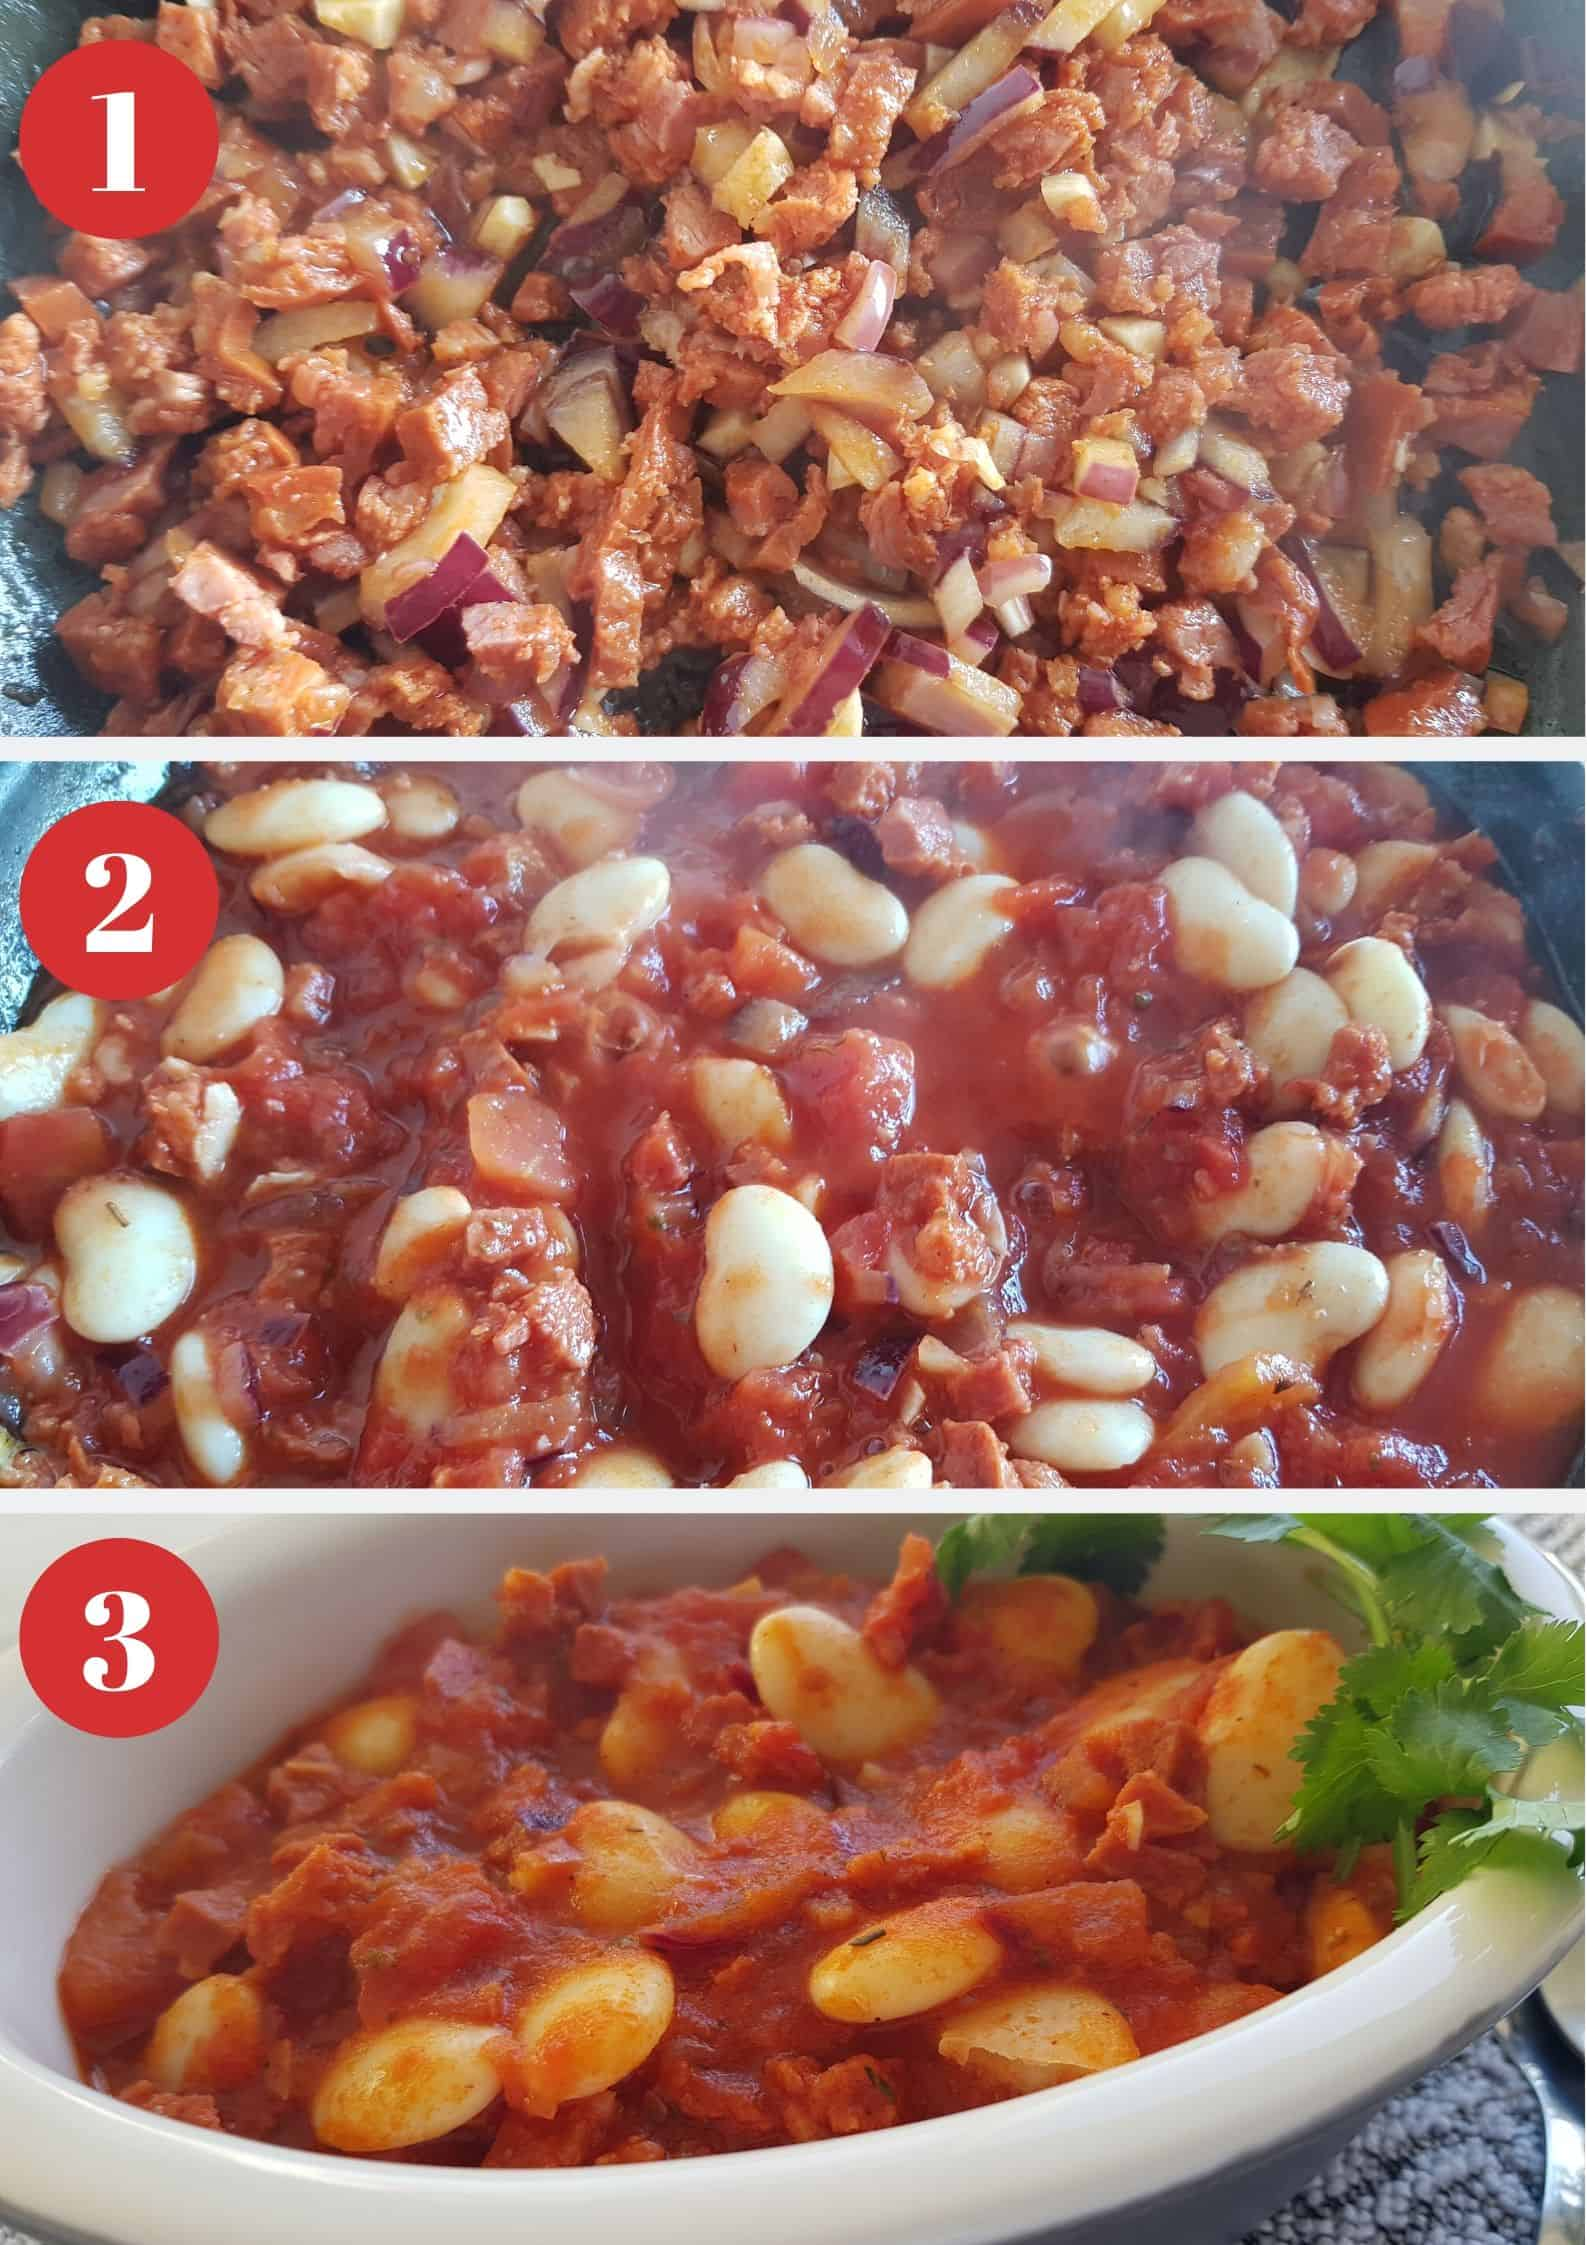 Infographic showing how to make butter bean and chorizo stew.